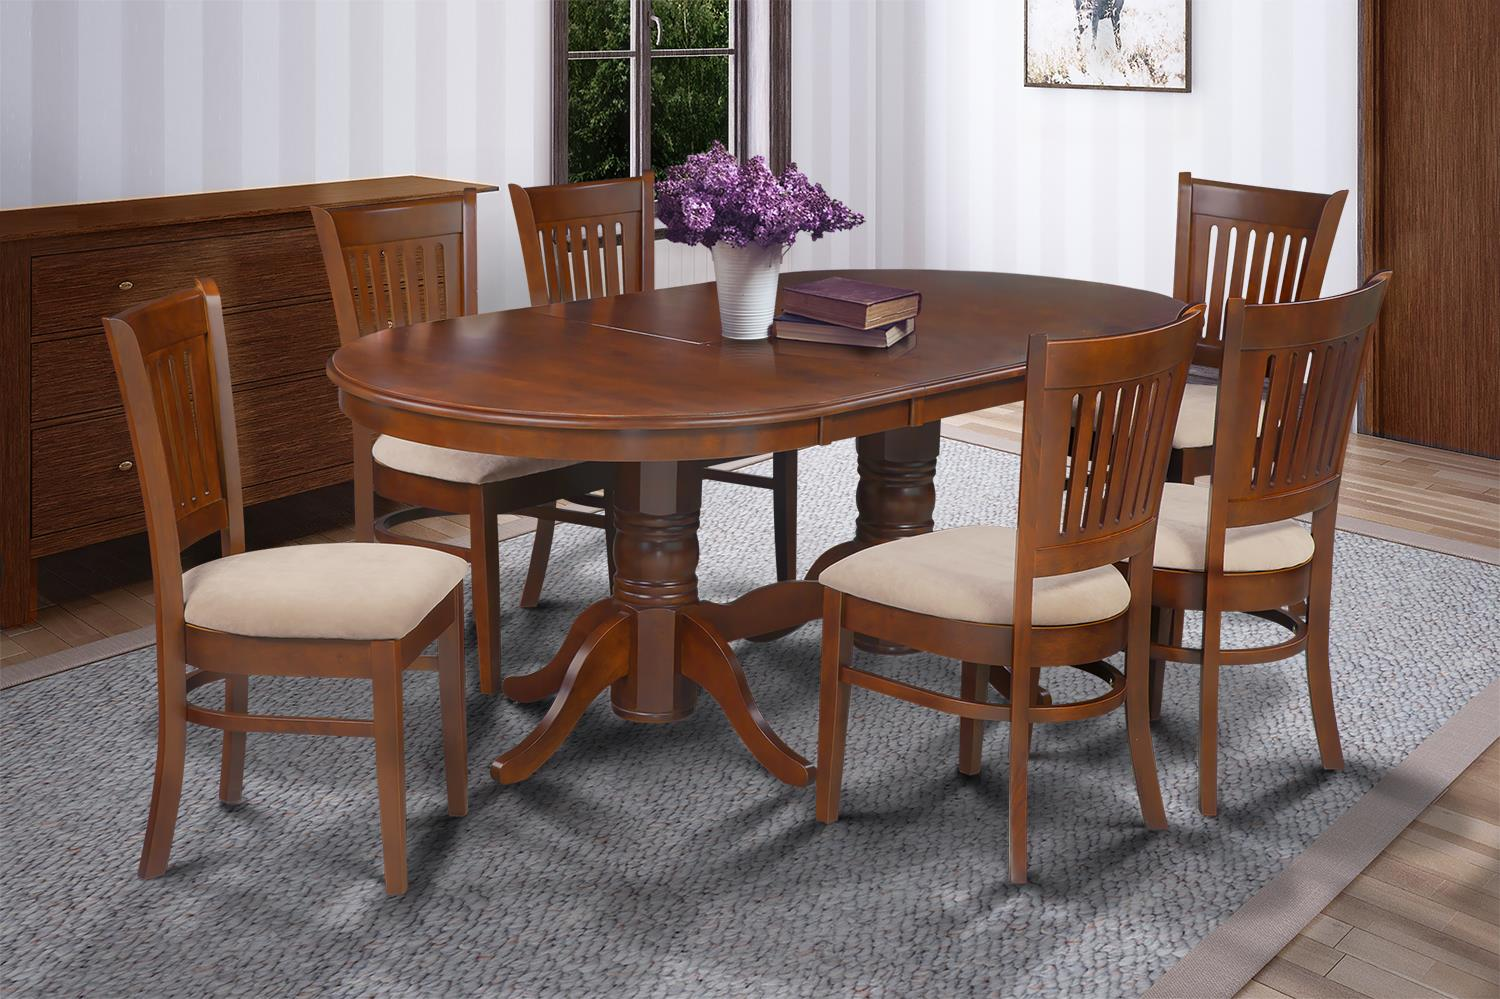 7 Piece Dining Room Set Table With A Butterfly Leaf And 6 Dining Chairs-Finish:Espresso,Shape:Oval by M&D Furniture